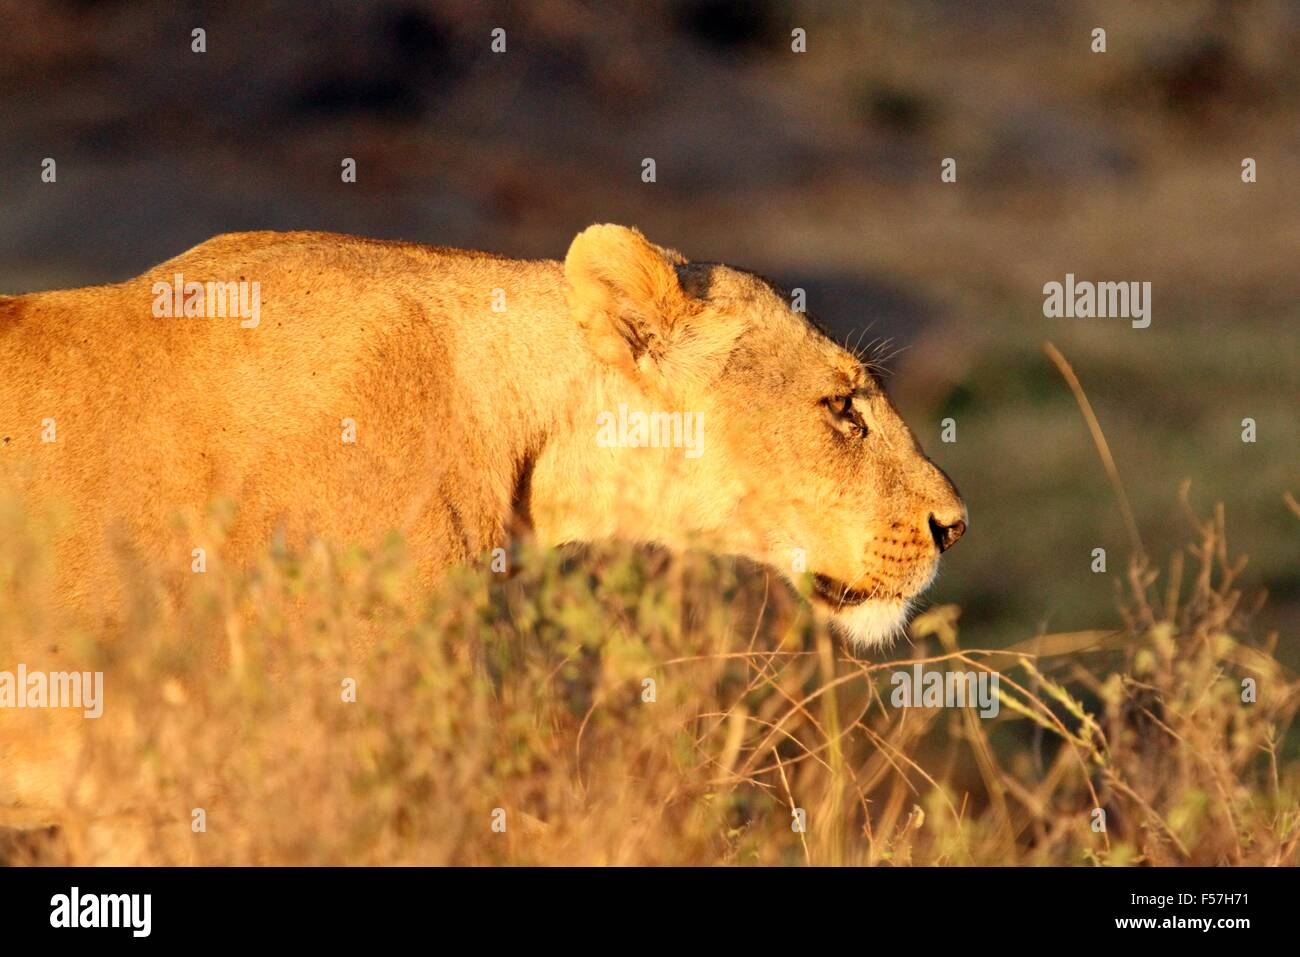 Evening golden light view of a young Lioness (Panthera leo) walking through grass after a kill, Nairobi National - Stock Image